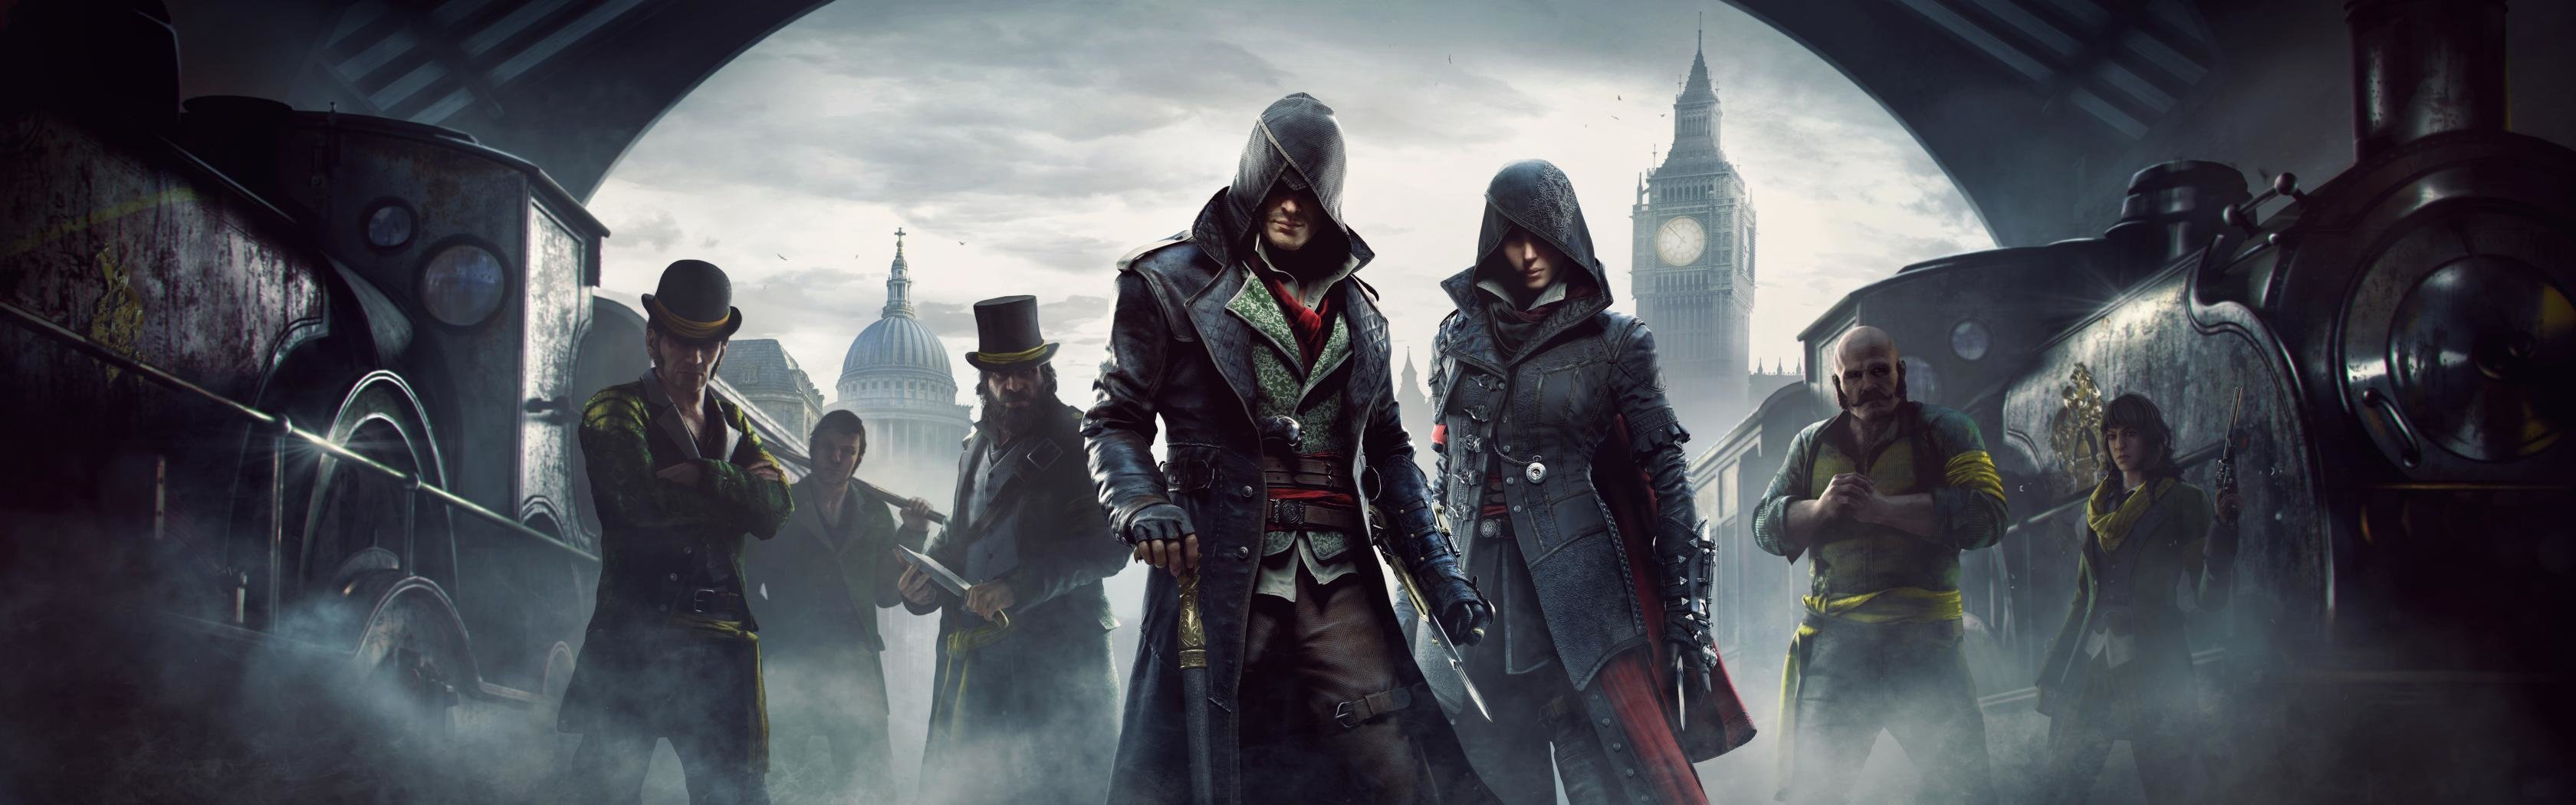 Dual Monitor Assassin S Creed Wallpapers Hd Backgrounds